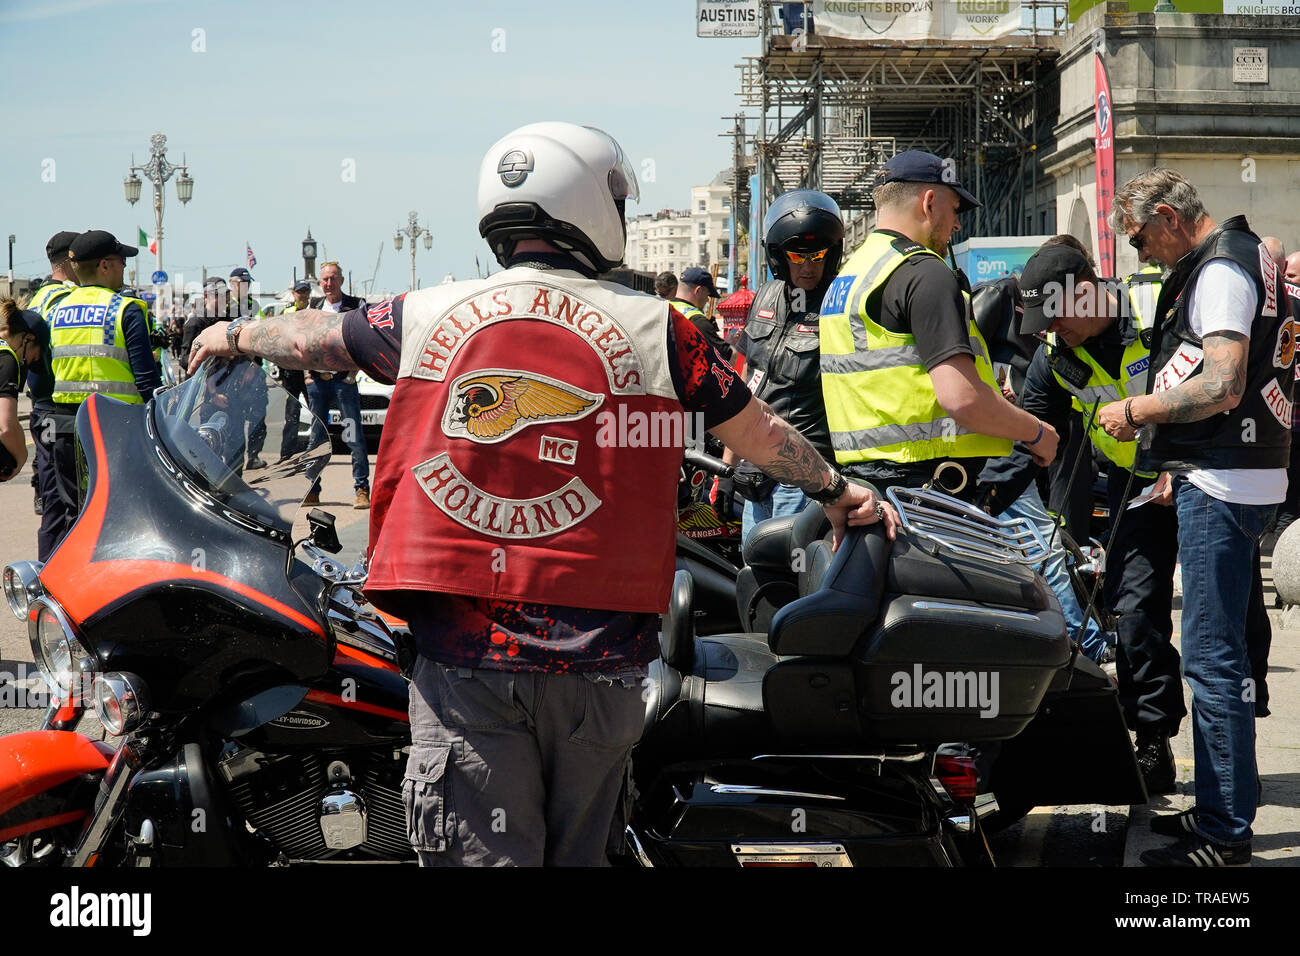 Police search Hells Angels at the 50th Aniversary meet-up on